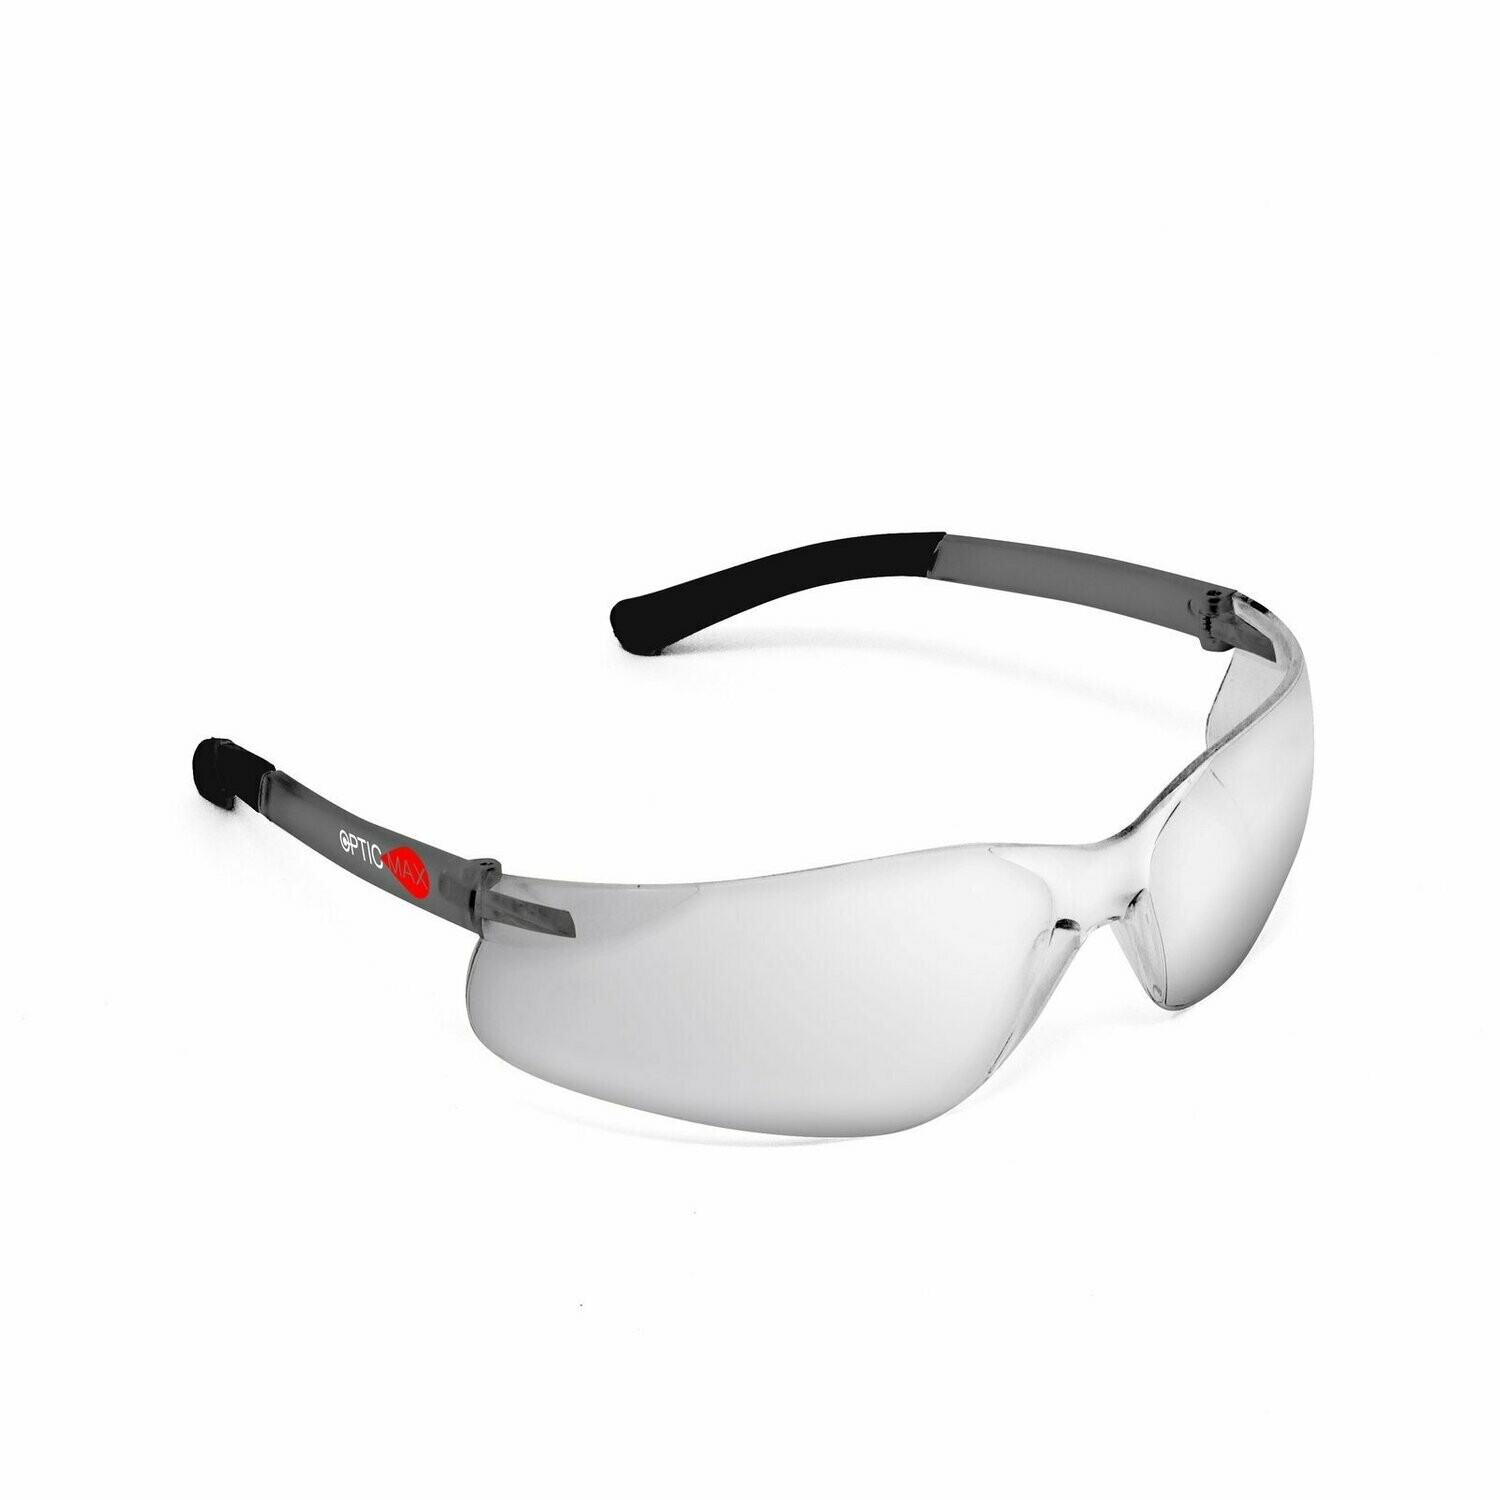 Optic Max Silver Mirror Lens (12 per pack)